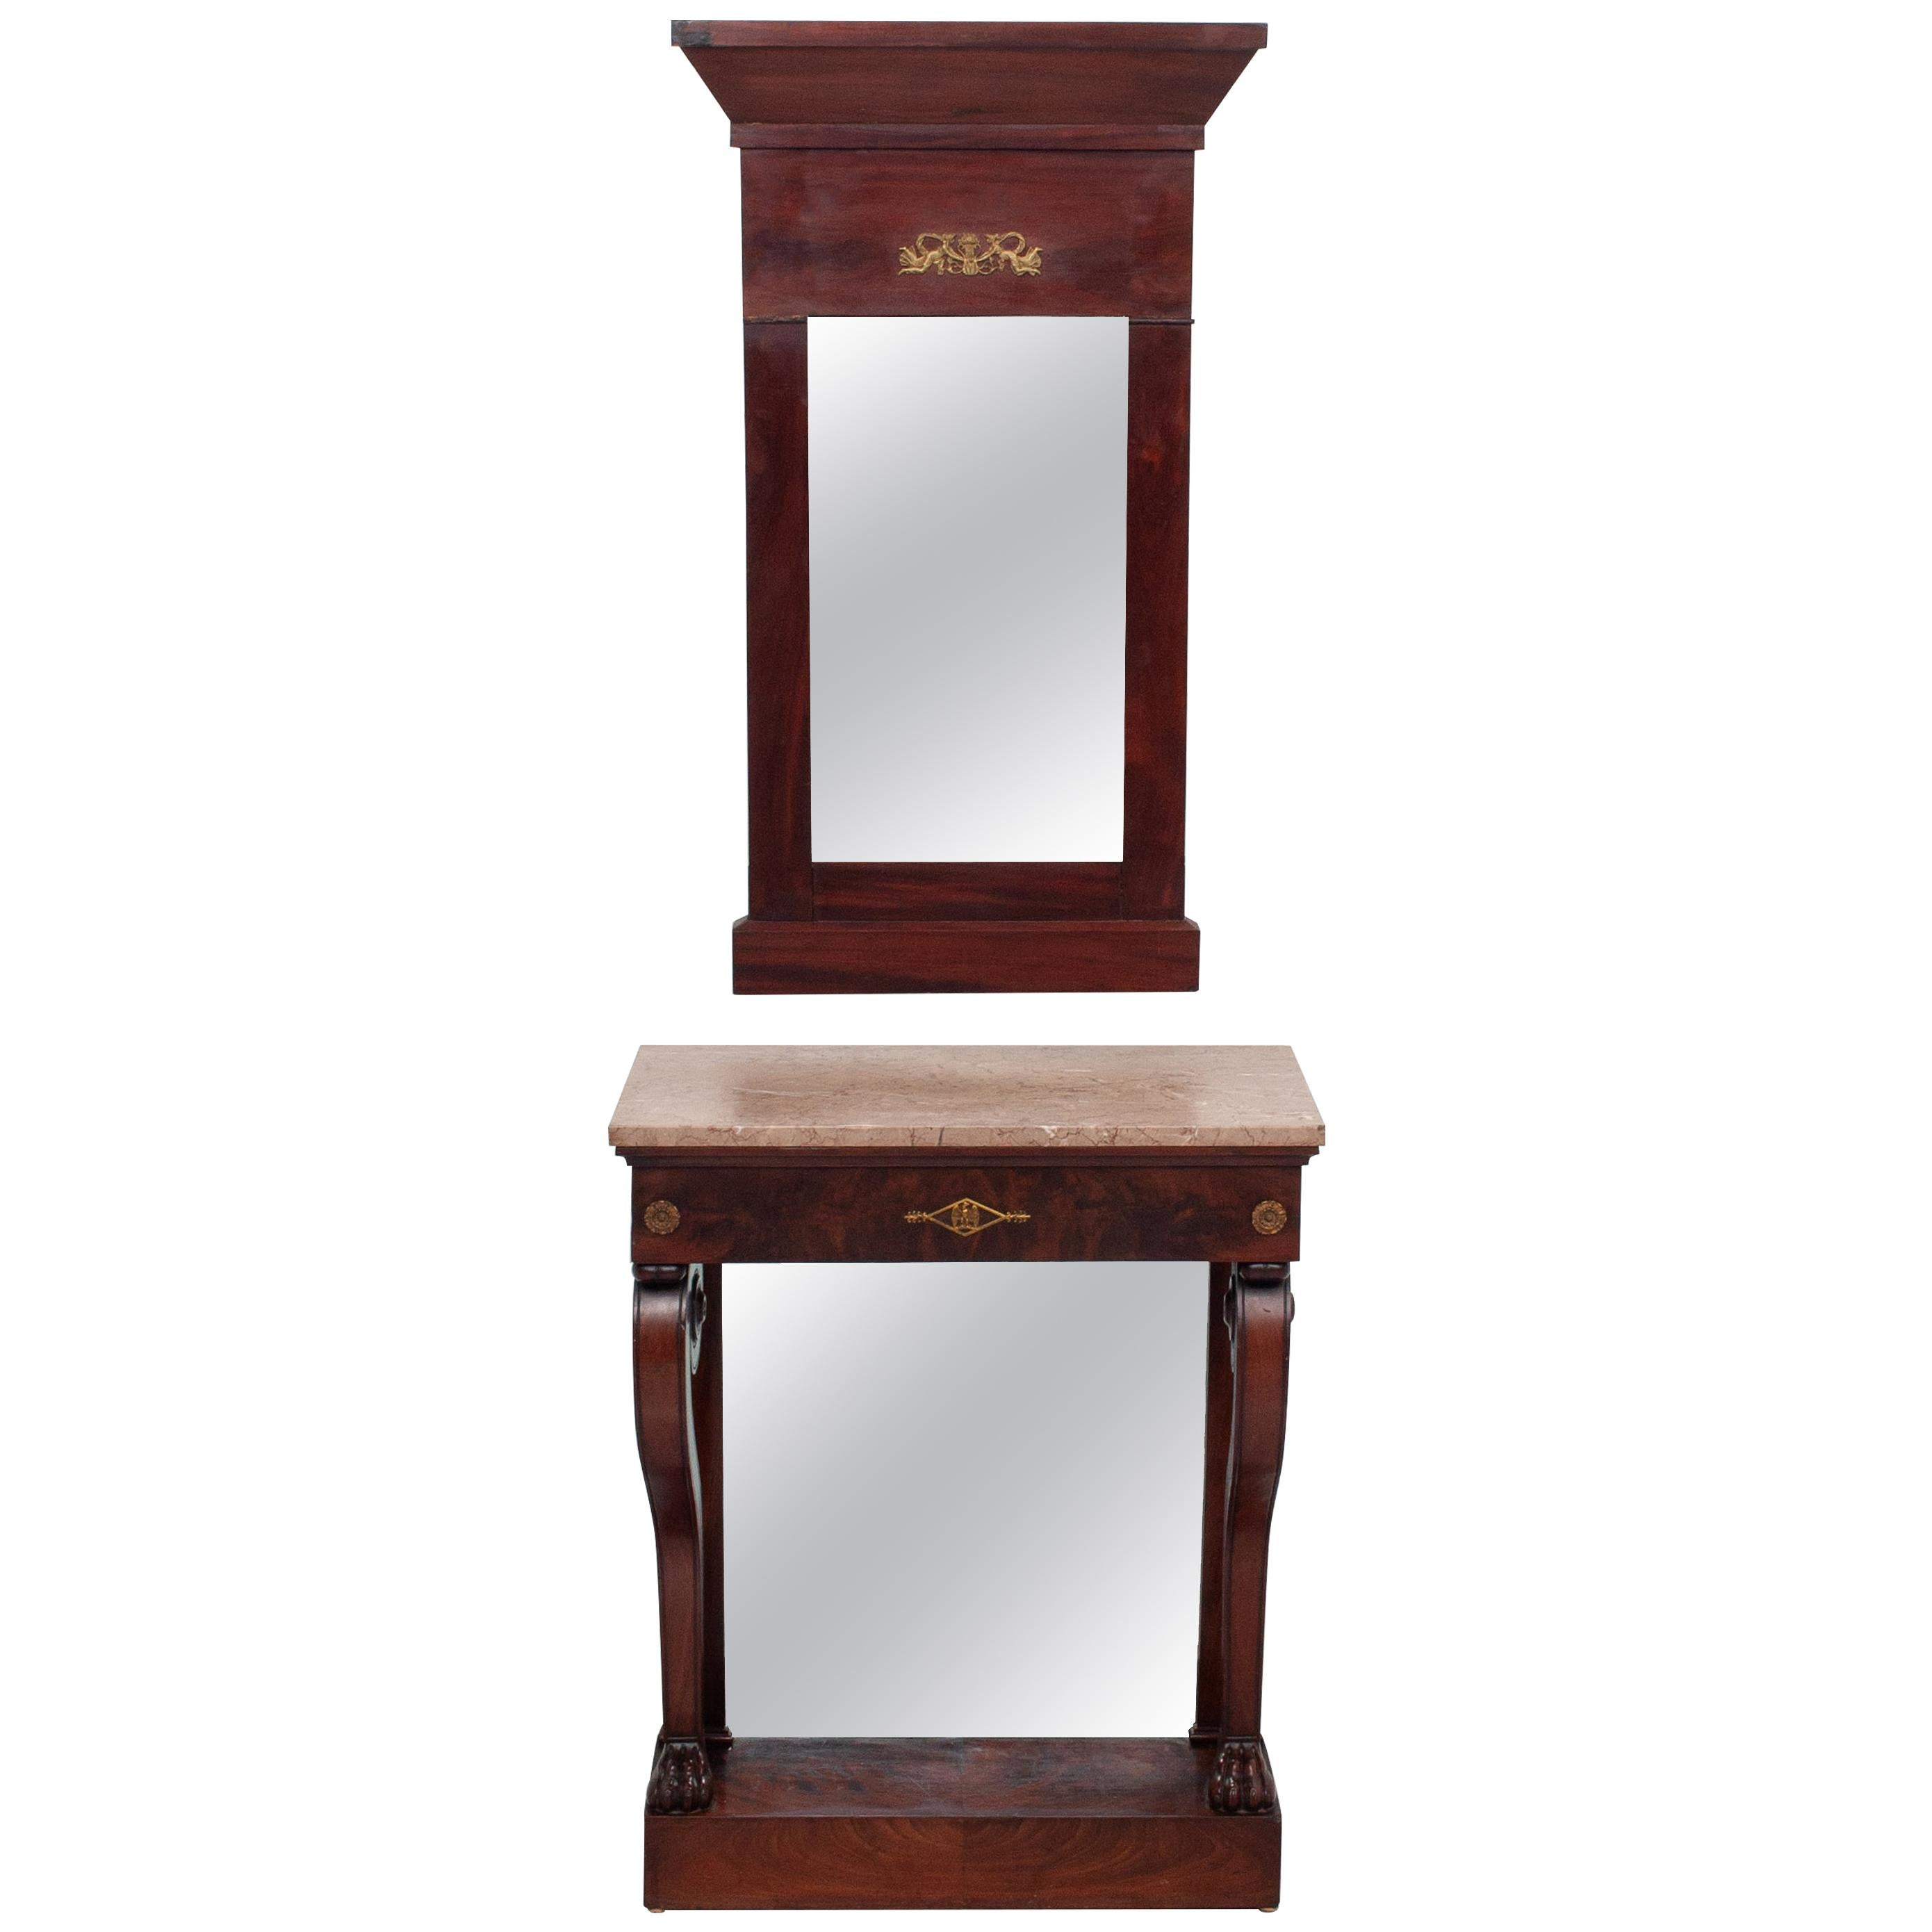 Empire Style Mahogany Trumeau Mirror with Matching Console Table